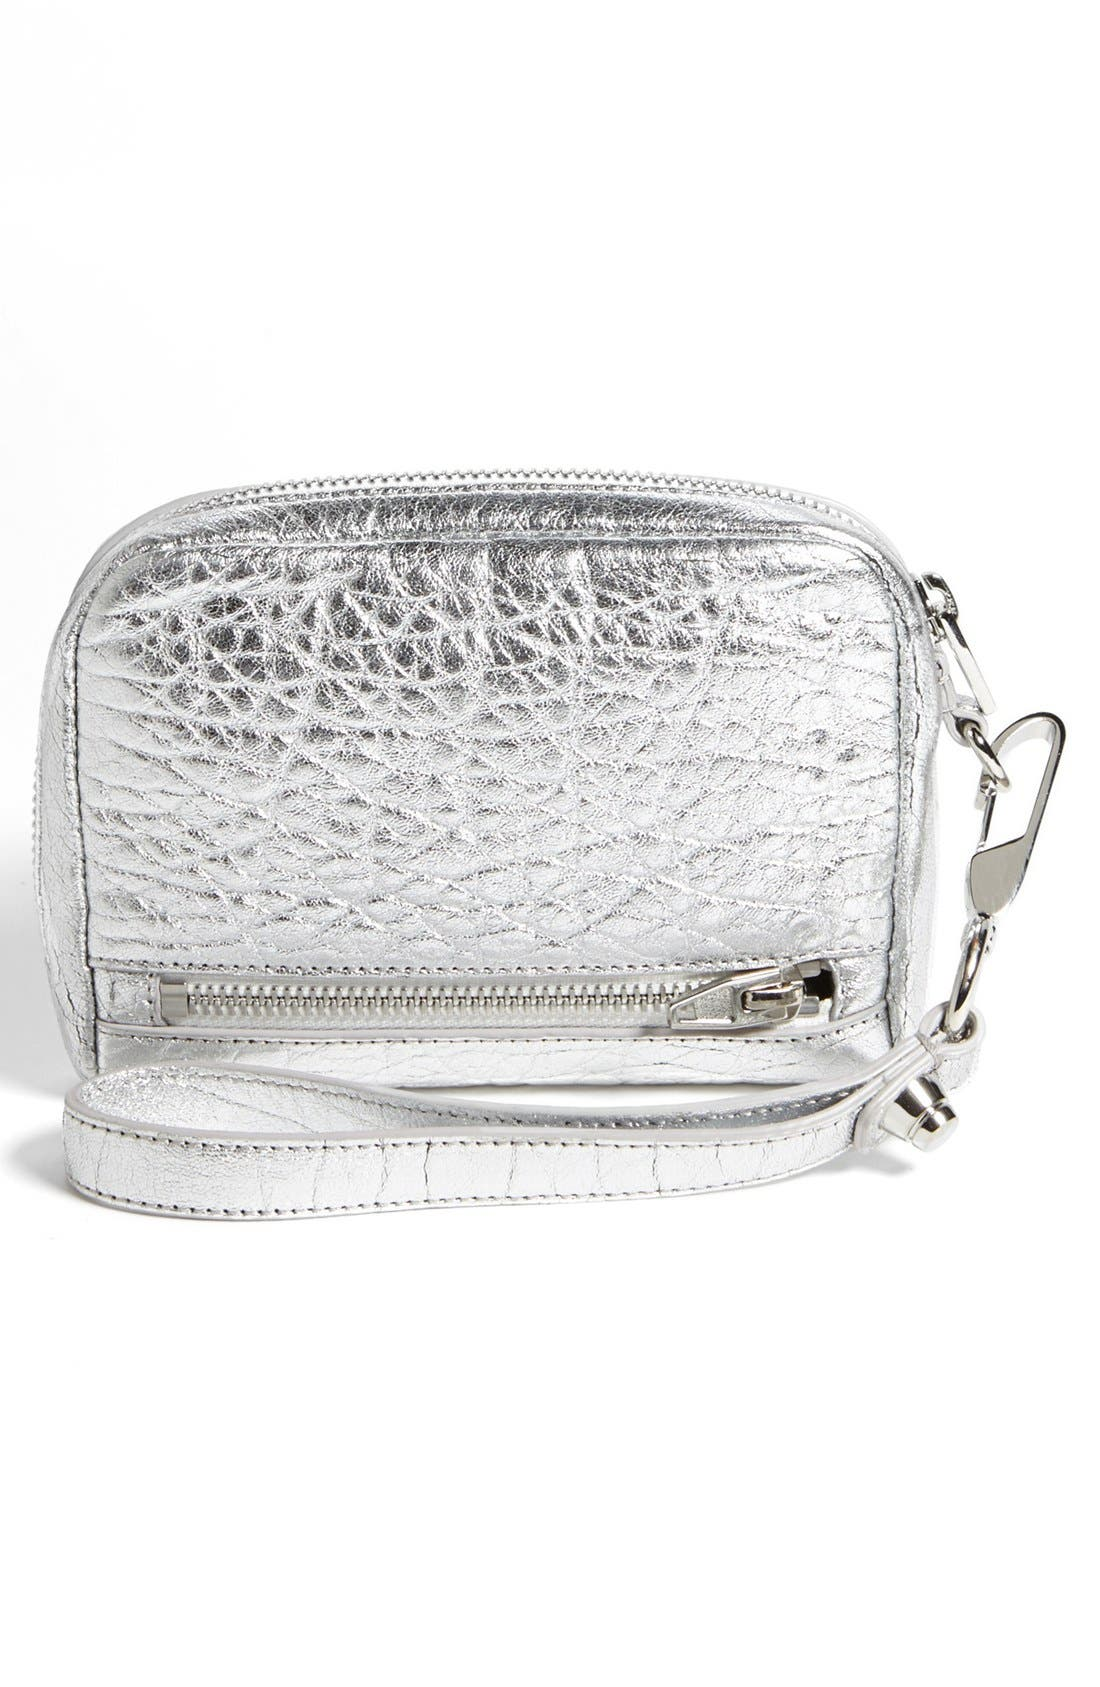 Alternate Image 3  - Alexander Wang 'Fumo - Large' Metallic Leather Wristlet